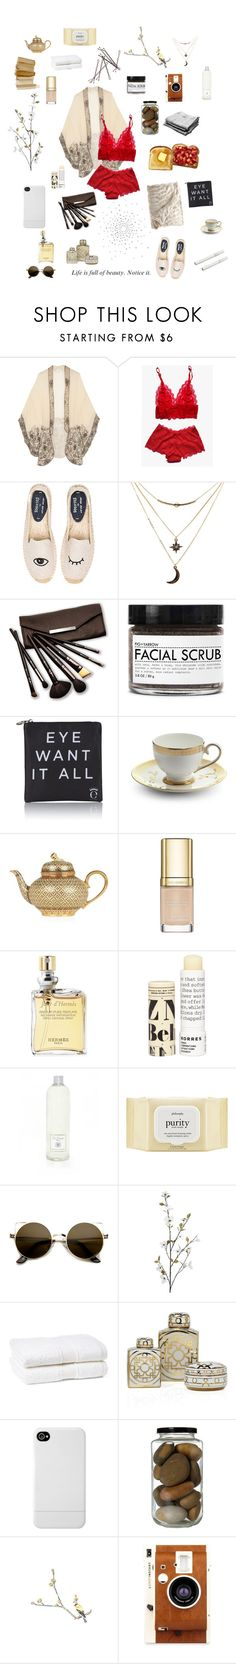 """That would be enough"" by hannah-grace ❤ liked on Polyvore featuring Anna Sui, Soludos, Charlotte Russe, Borghese, Fig+Yarrow, Eyeko, Prouna, Dolce&Gabbana, Hermès and Korres"